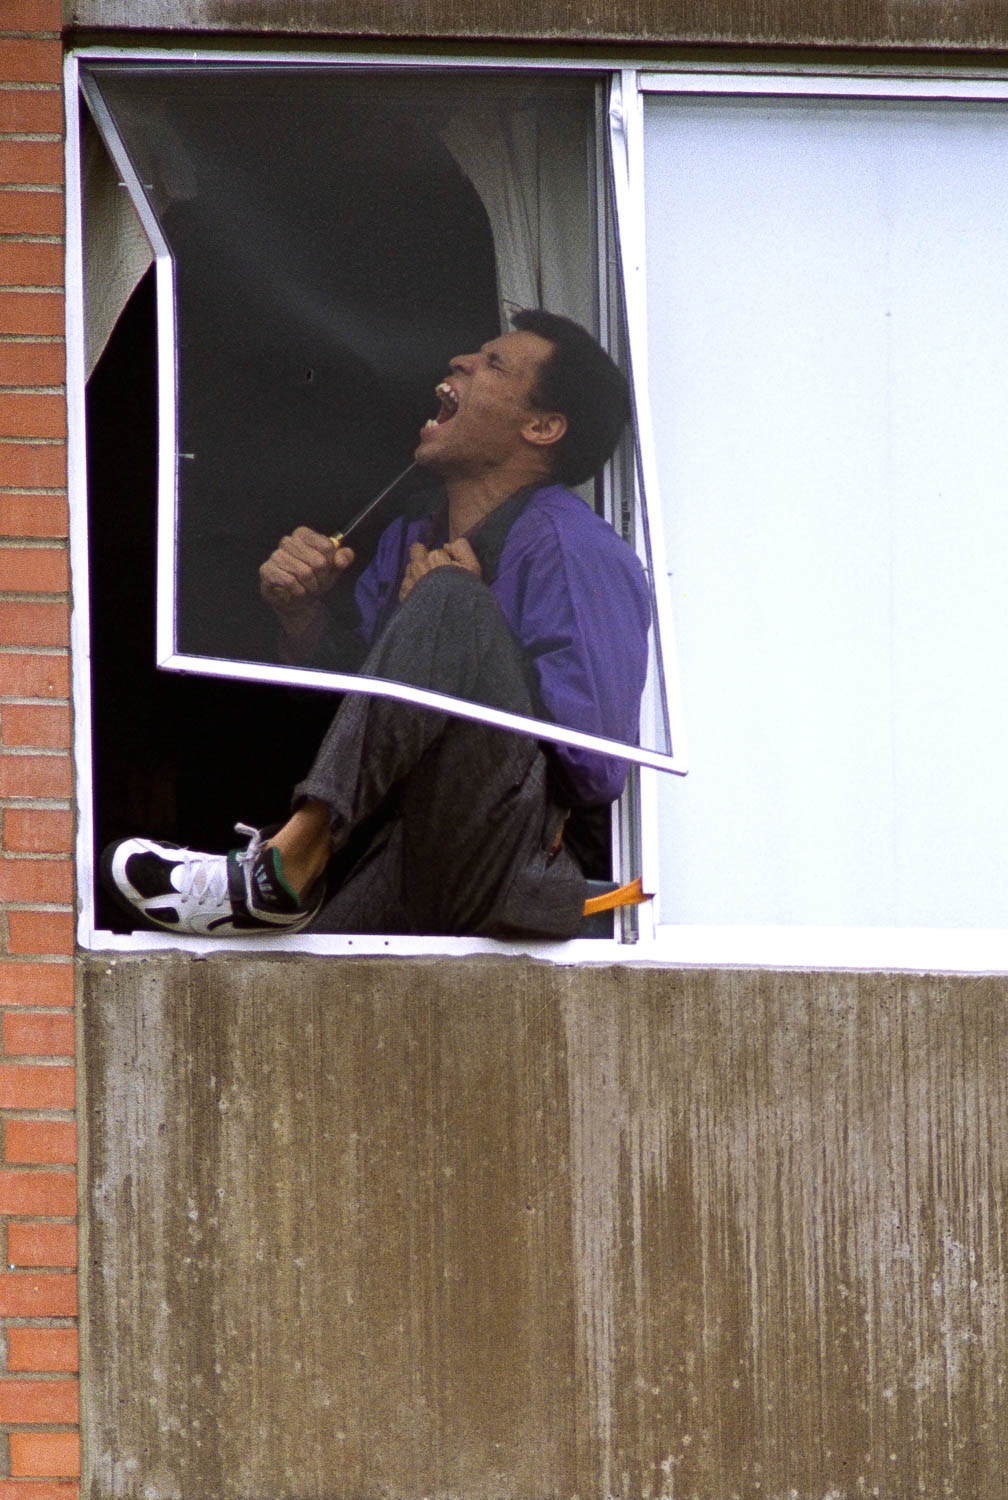 An unidentified man threatens to commit suicide in the window of his Moline apartment. Police were able to talk him out of the third story window without incident after an hour long stand-off. Police officials refuse to release the subject's name. (Todd Mizener - Dispatch/Argus)